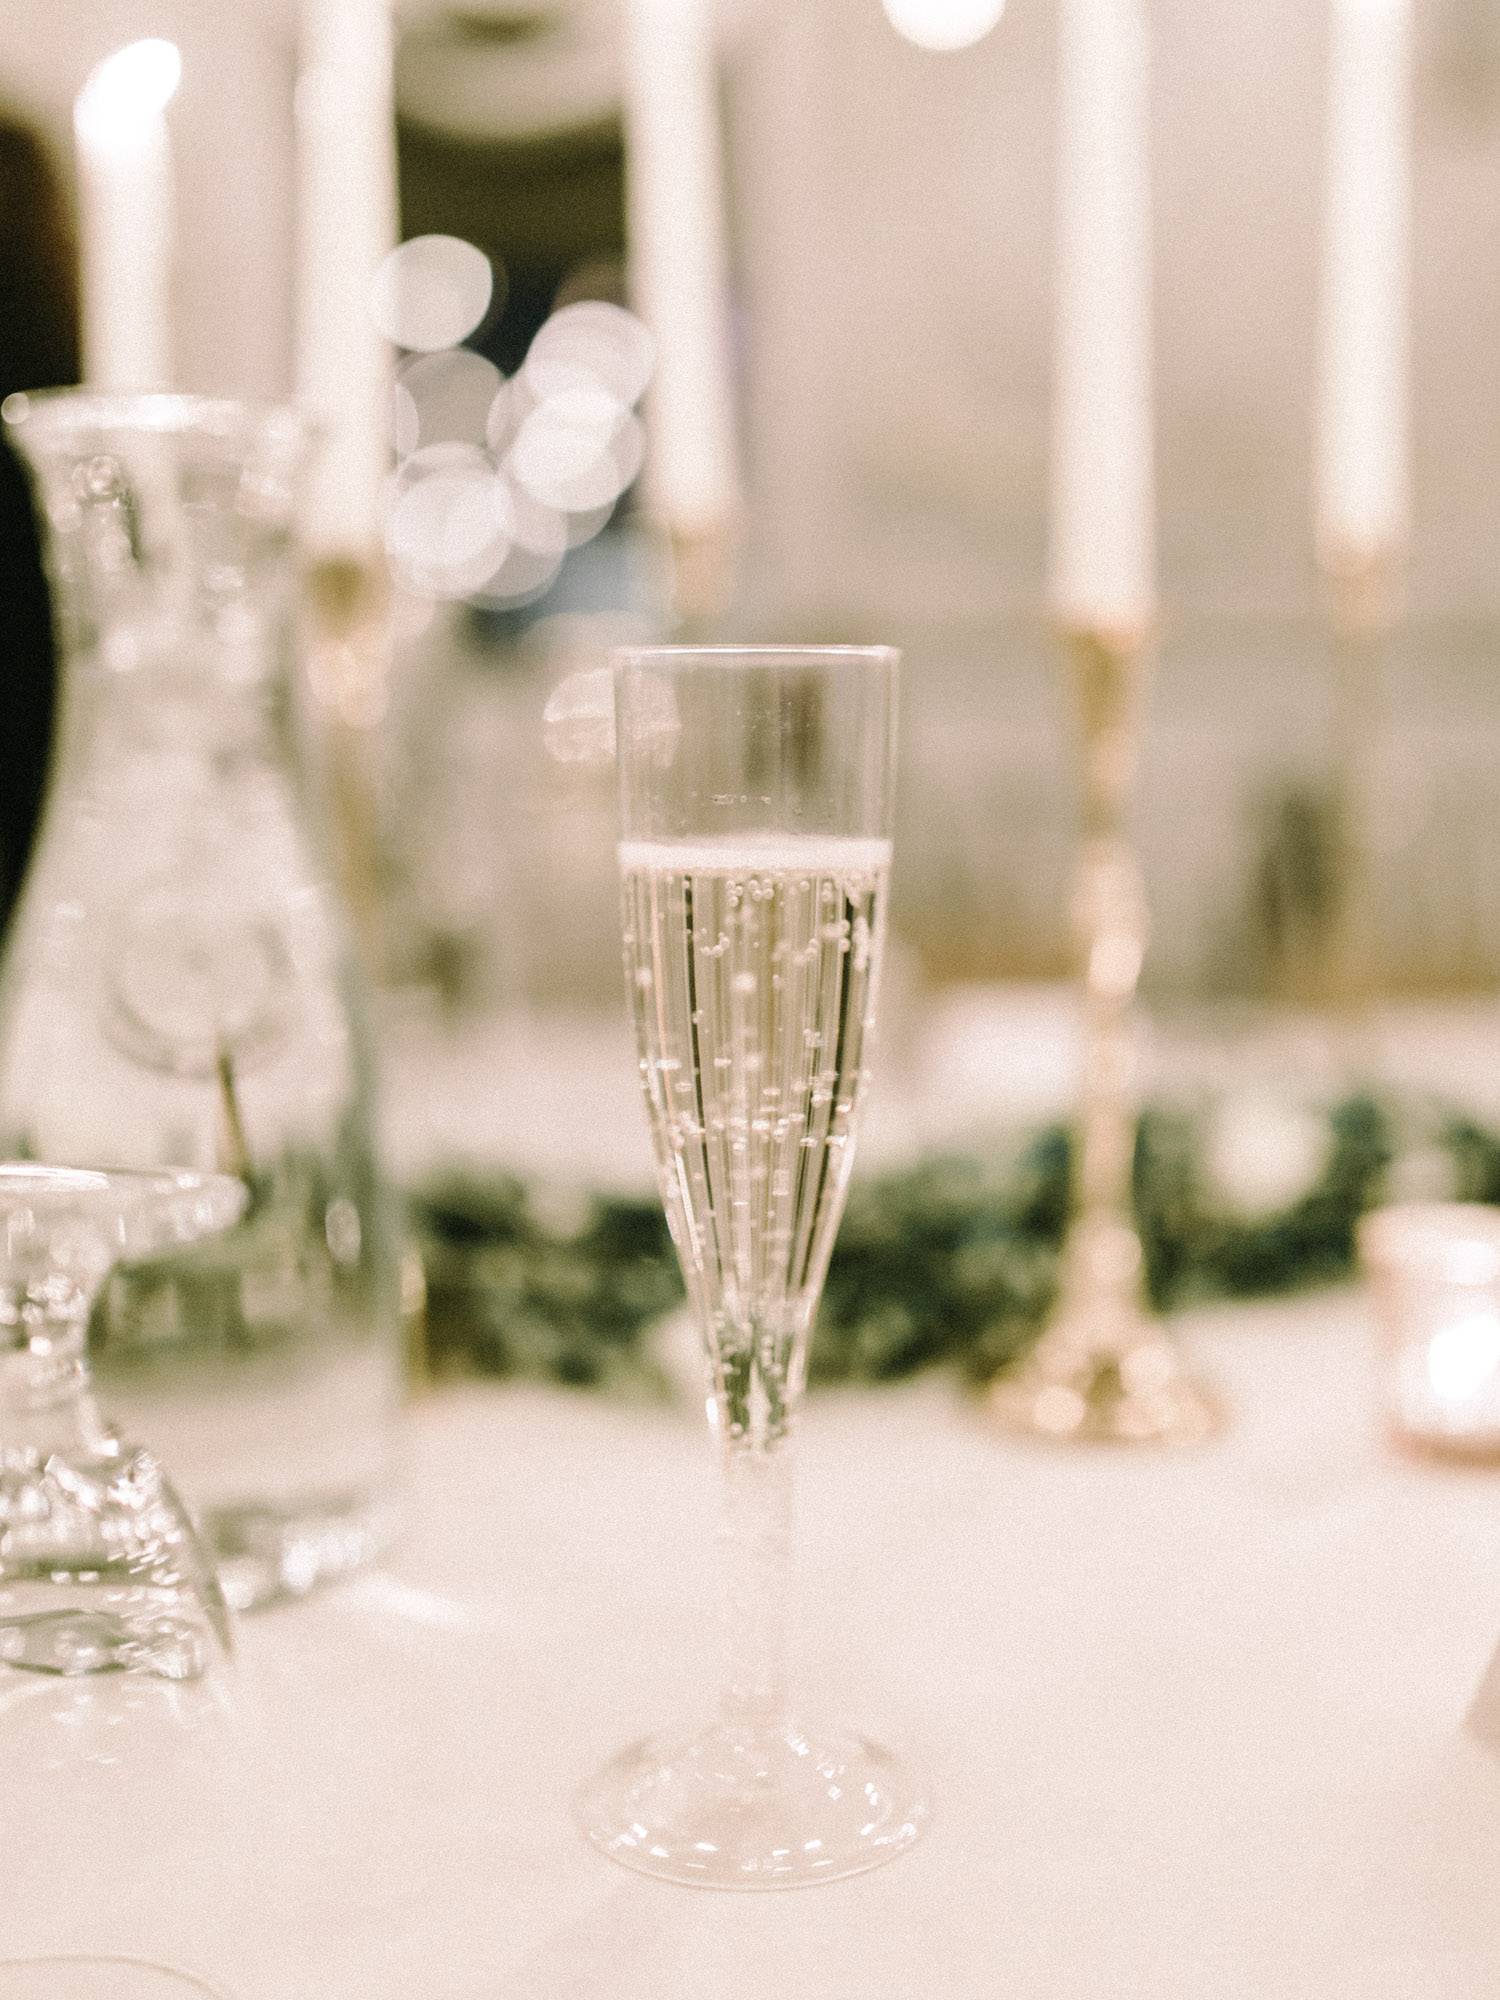 A bubbly glass of champagne fizzes on a candlelit reception table at a reception at The Brick wedding venue in Indiana